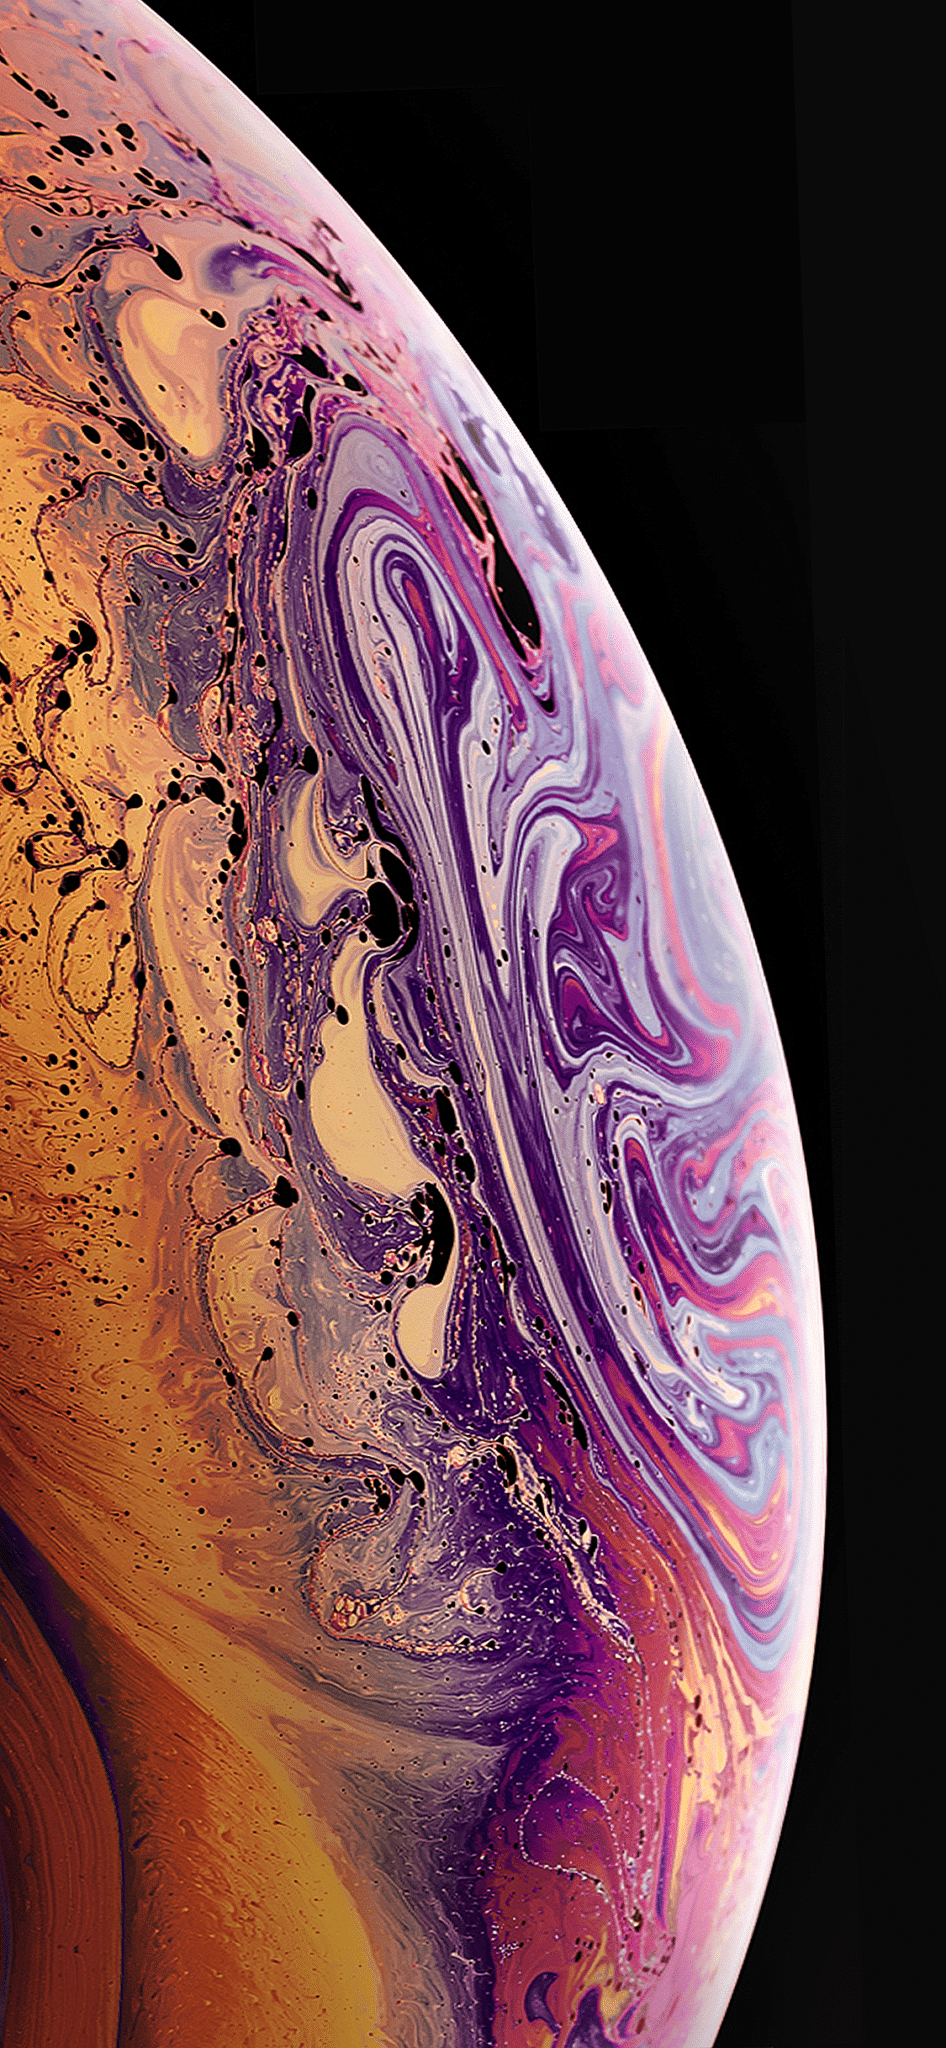 iPhone XS Wallpaper Oficial 1